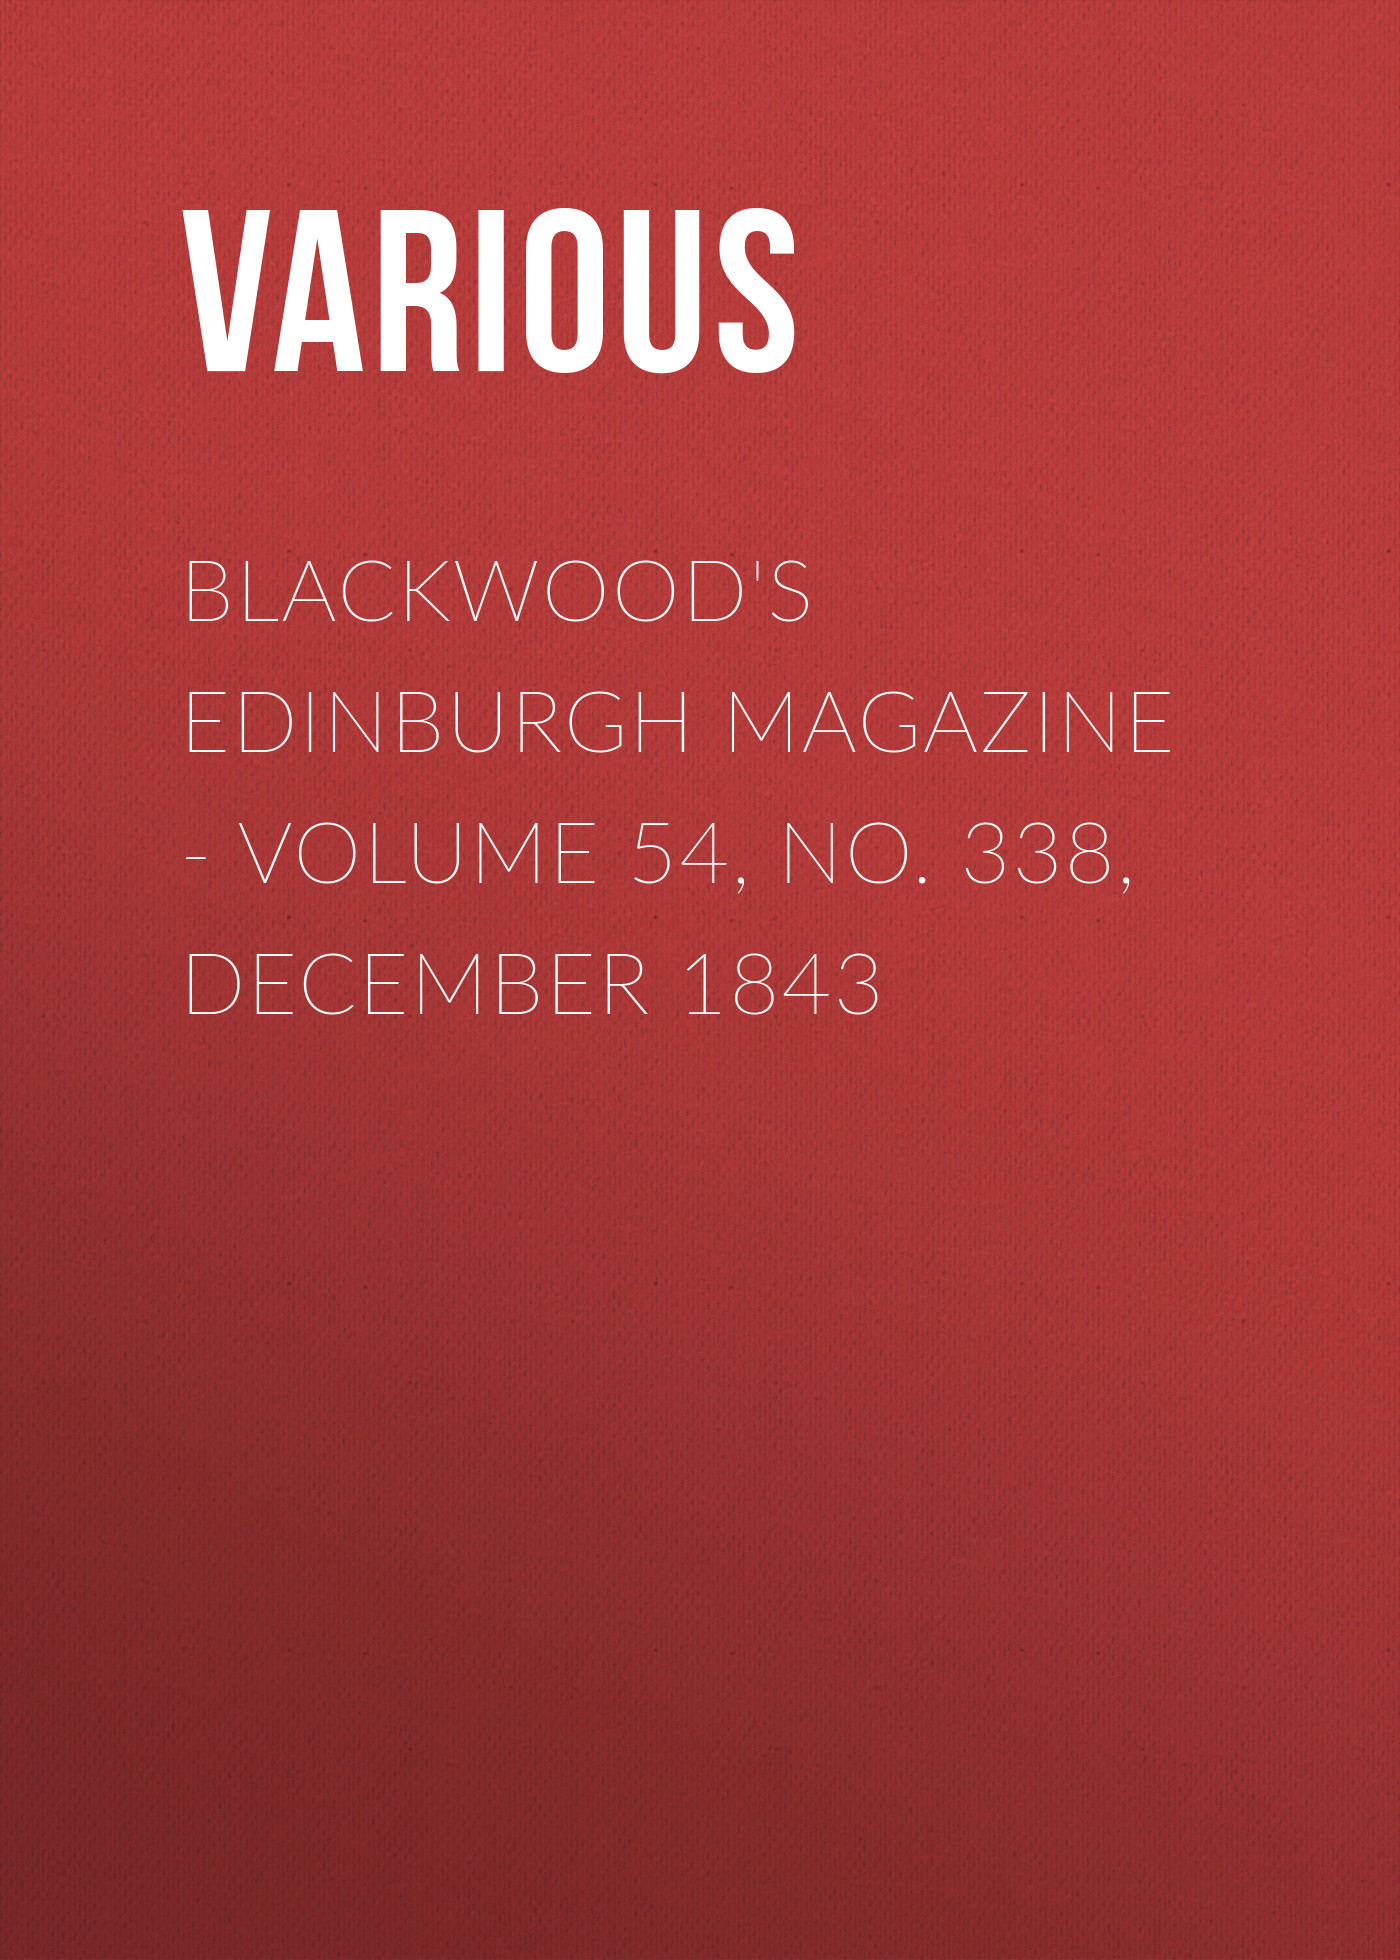 Various Blackwood's Edinburgh Magazine - Volume 54, No. 338, December 1843 the yale literary magazine volume 54 issue 7